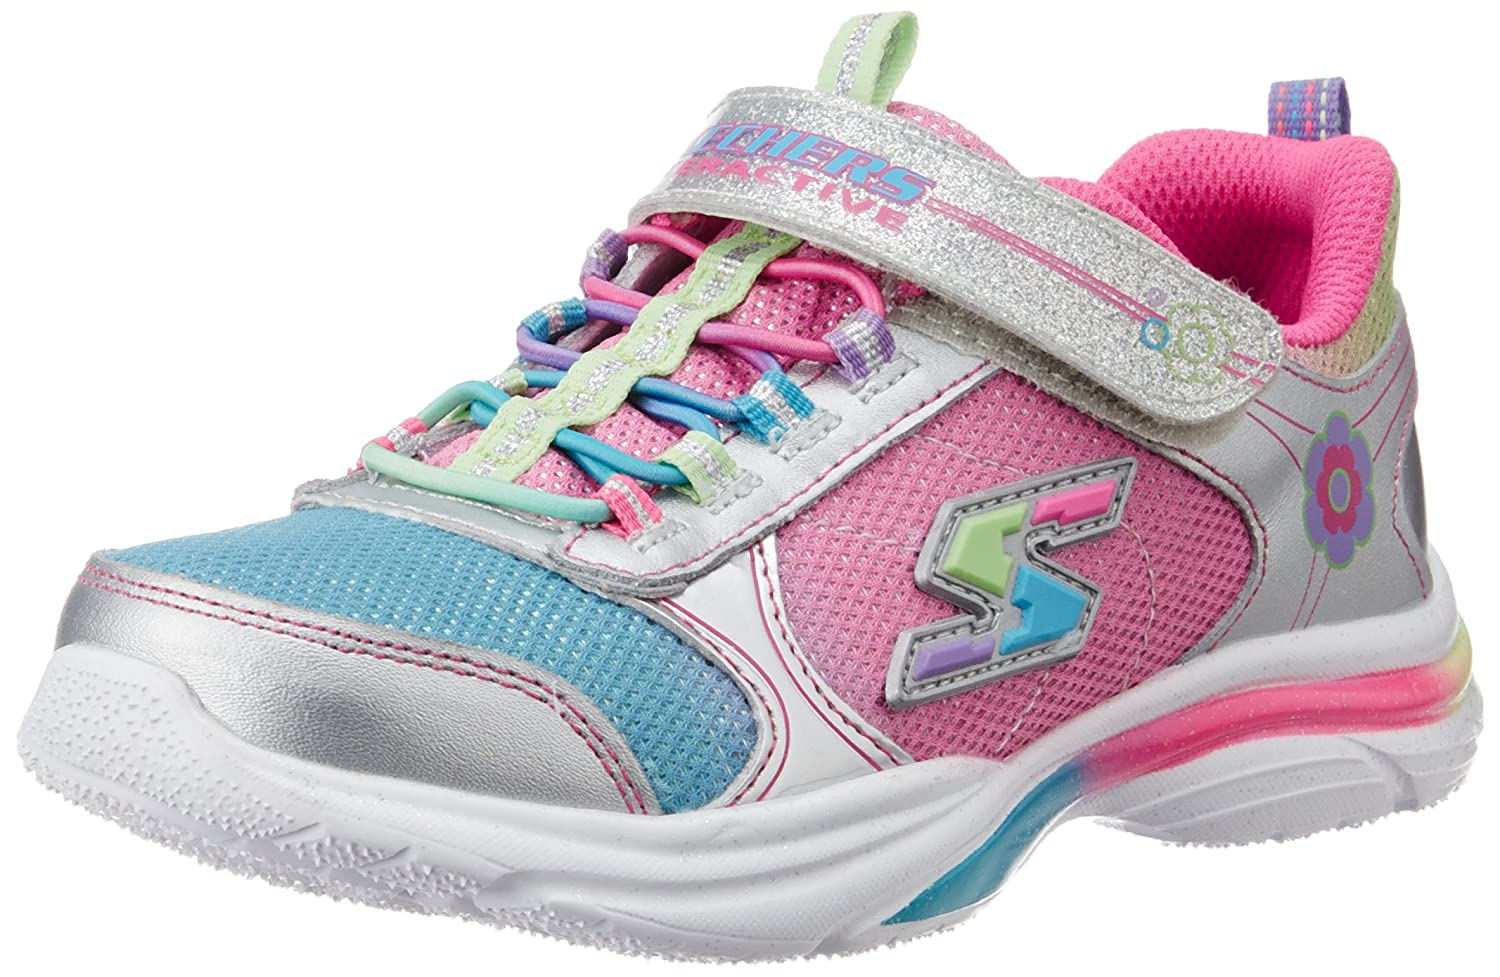 Skechers Kids 10900L Gamekicks Interactive Game and Light-Up Sneaker (Little Kid/Big Kid)